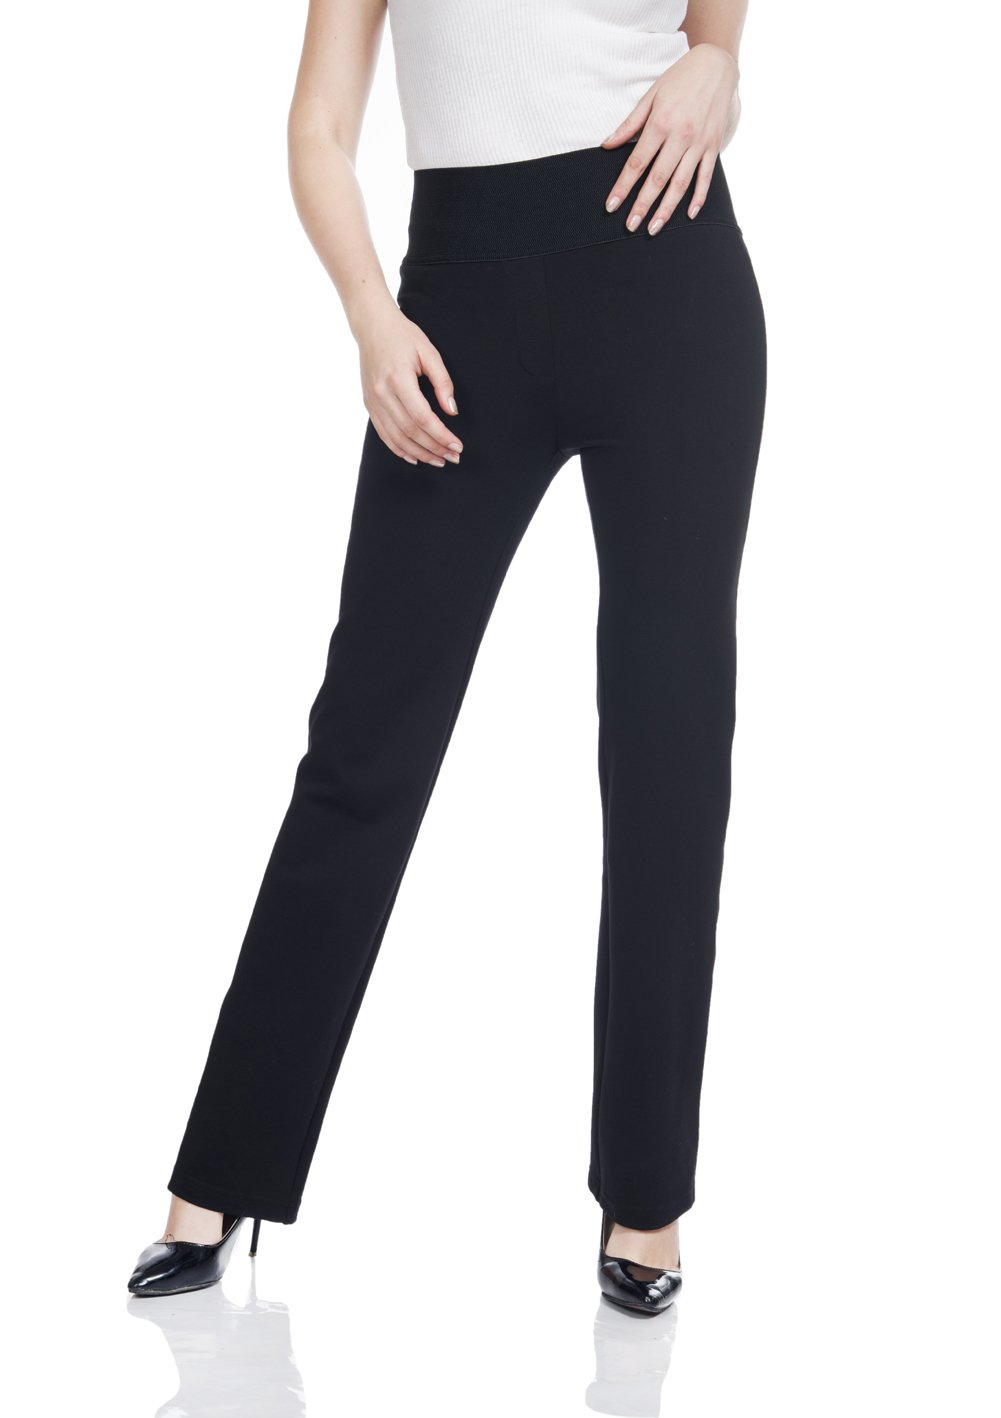 Soshow Women Pull On Stretch Pants Ladies' Casual Bootcut Rayon Trousers